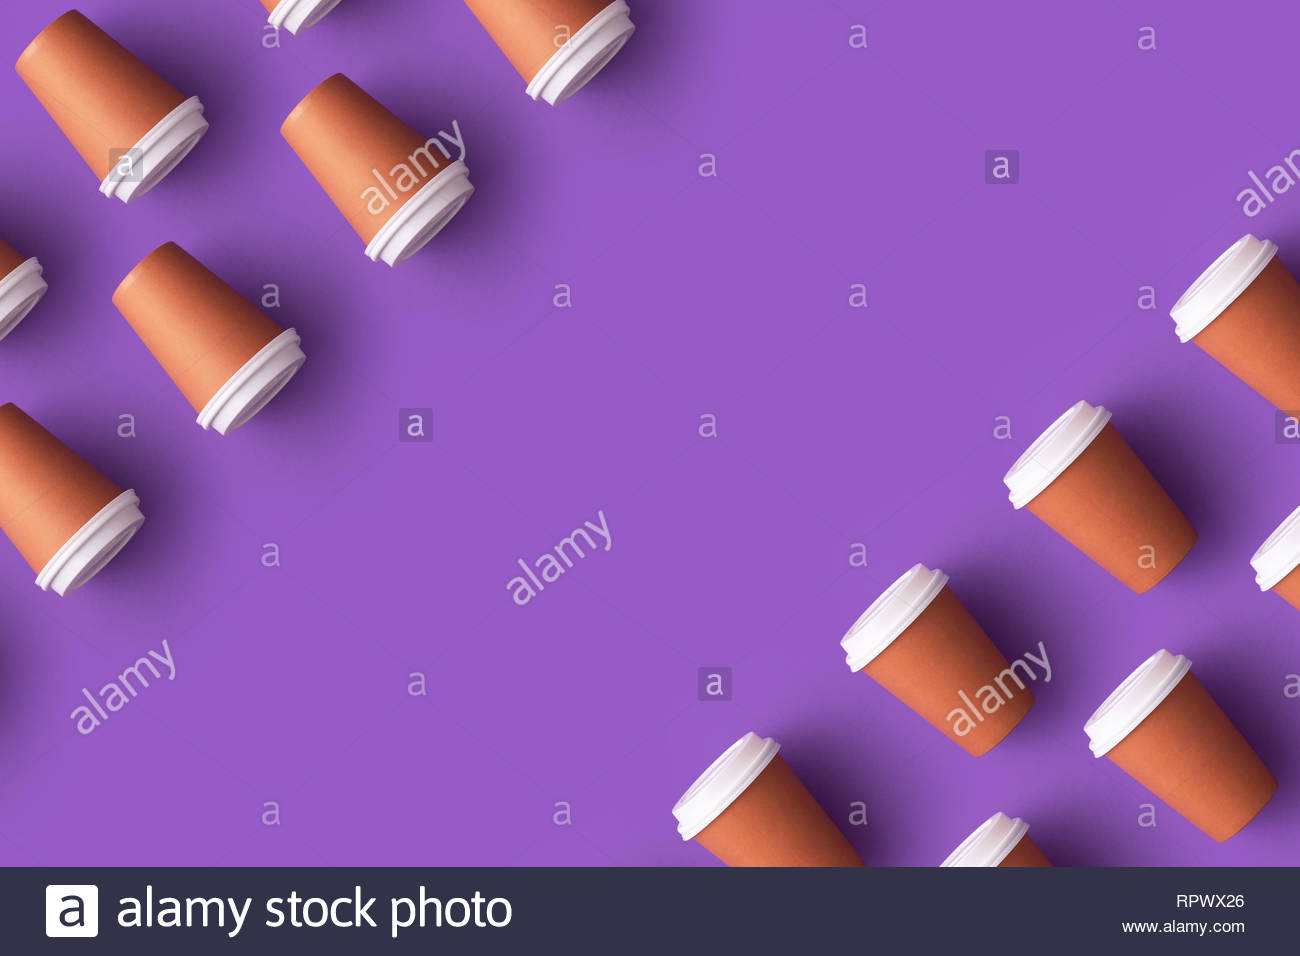 Multiple disposable coffee cups organized over purple background 1300x956